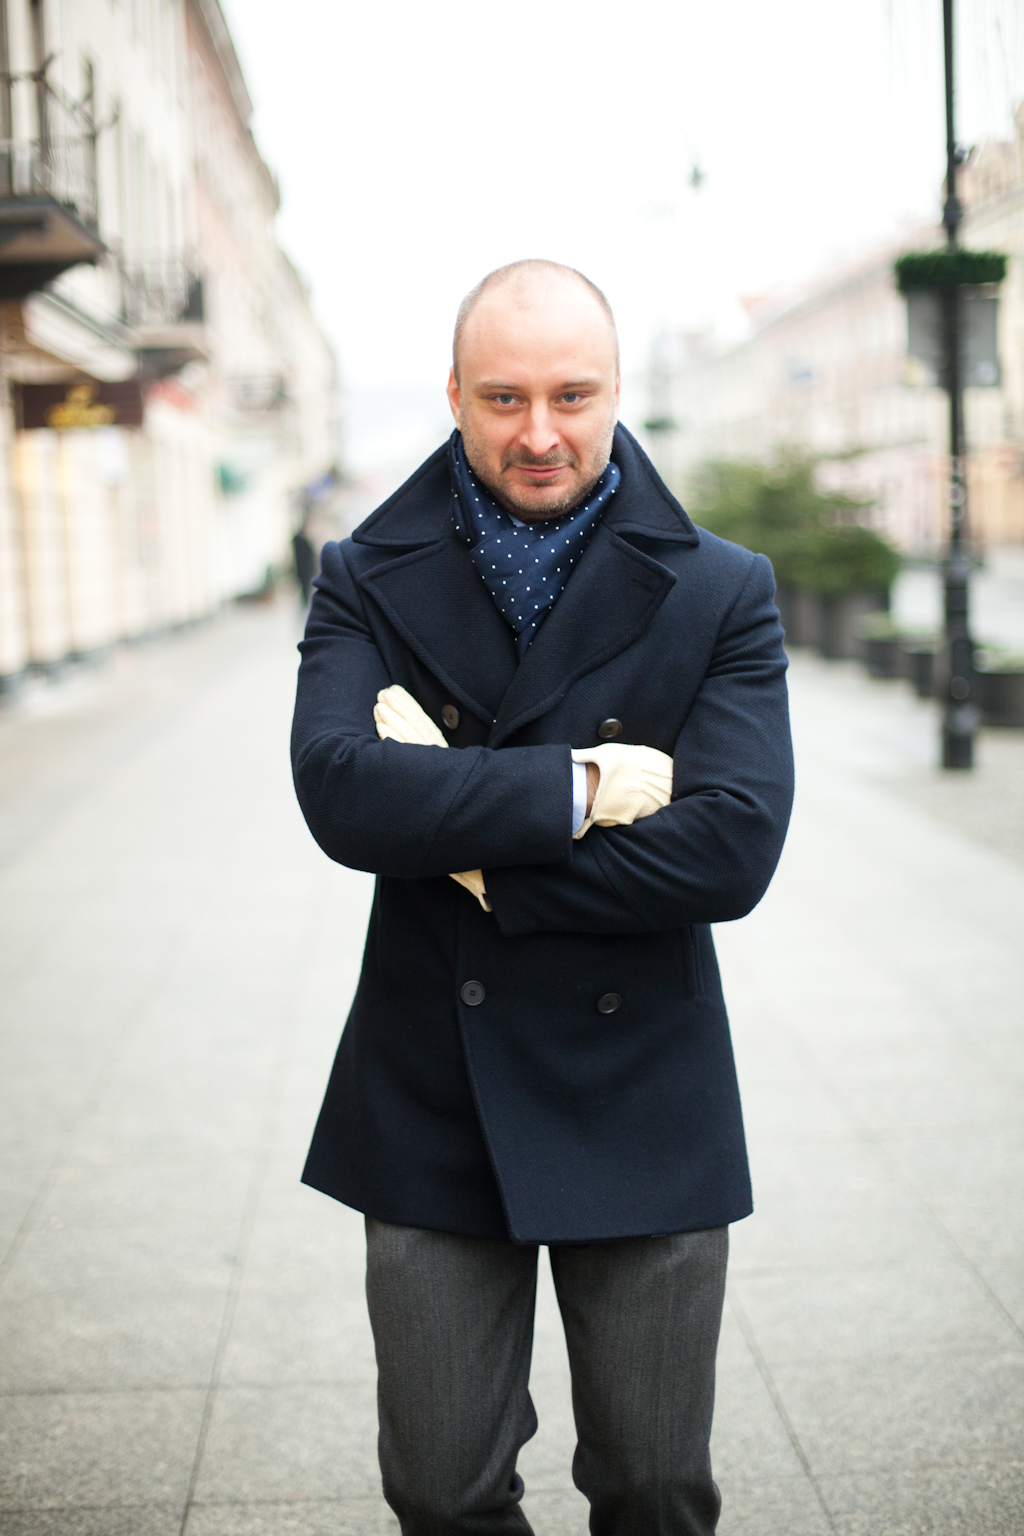 A pea coat is a great addition to any fall or winter wardrobe. Pea Coats were first worn by European and later American sailors. Normally a pea coat will be of a shorter length stopping right around the hips and be made from wool or a wool-blend.